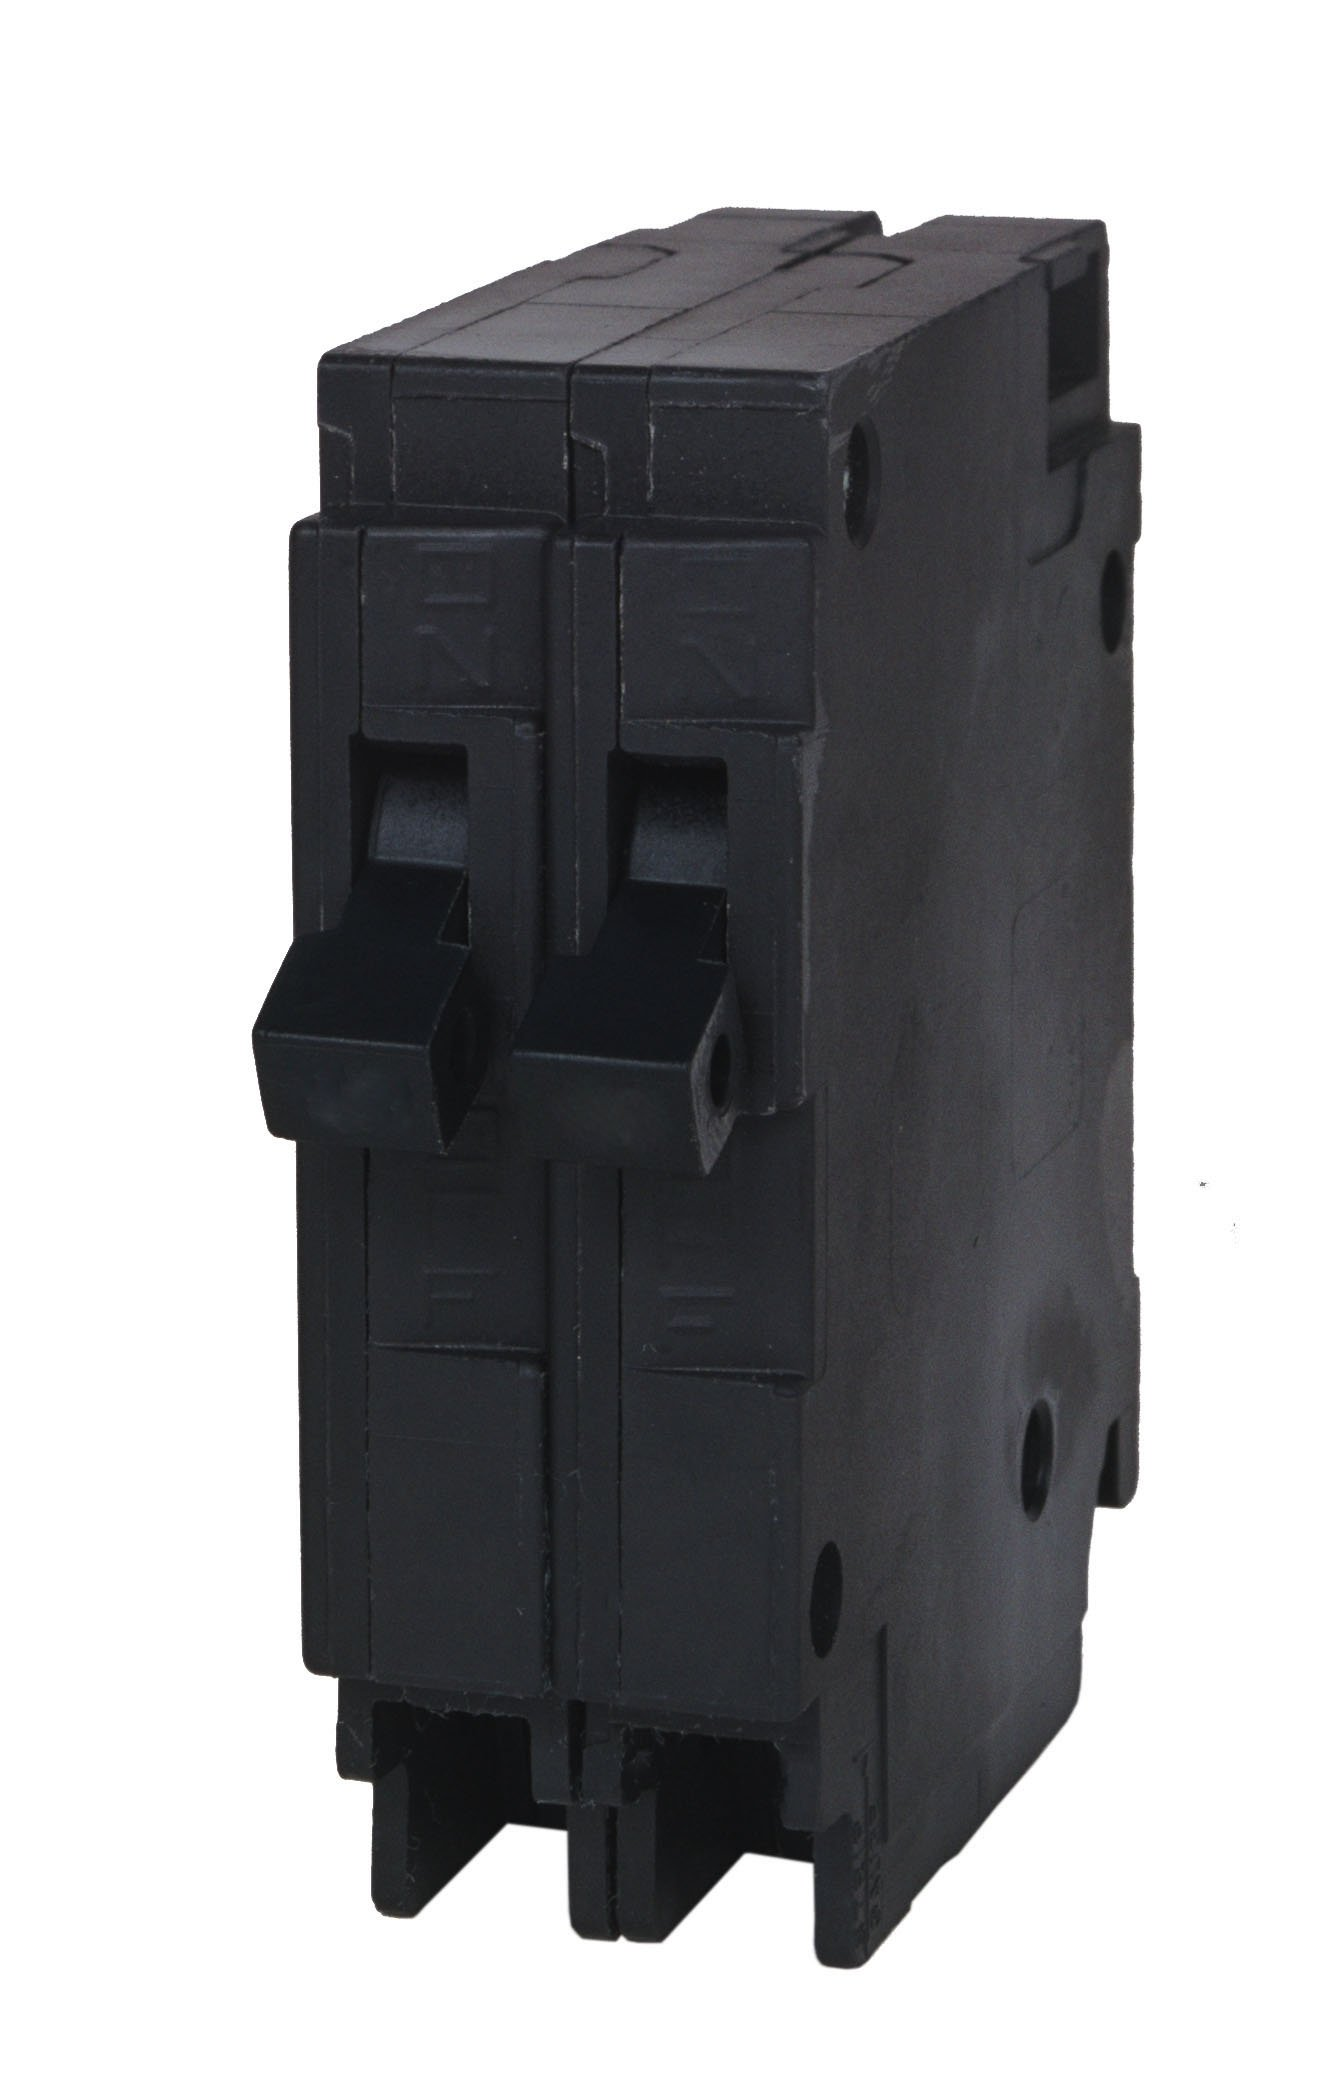 Cheap Murray Circuit Breaker Box Find Space 4circuit Outdoor Singlephase Main Lug Panel Get Quotations Mp1520 One 15 Amp And 20 Single Pole 120v